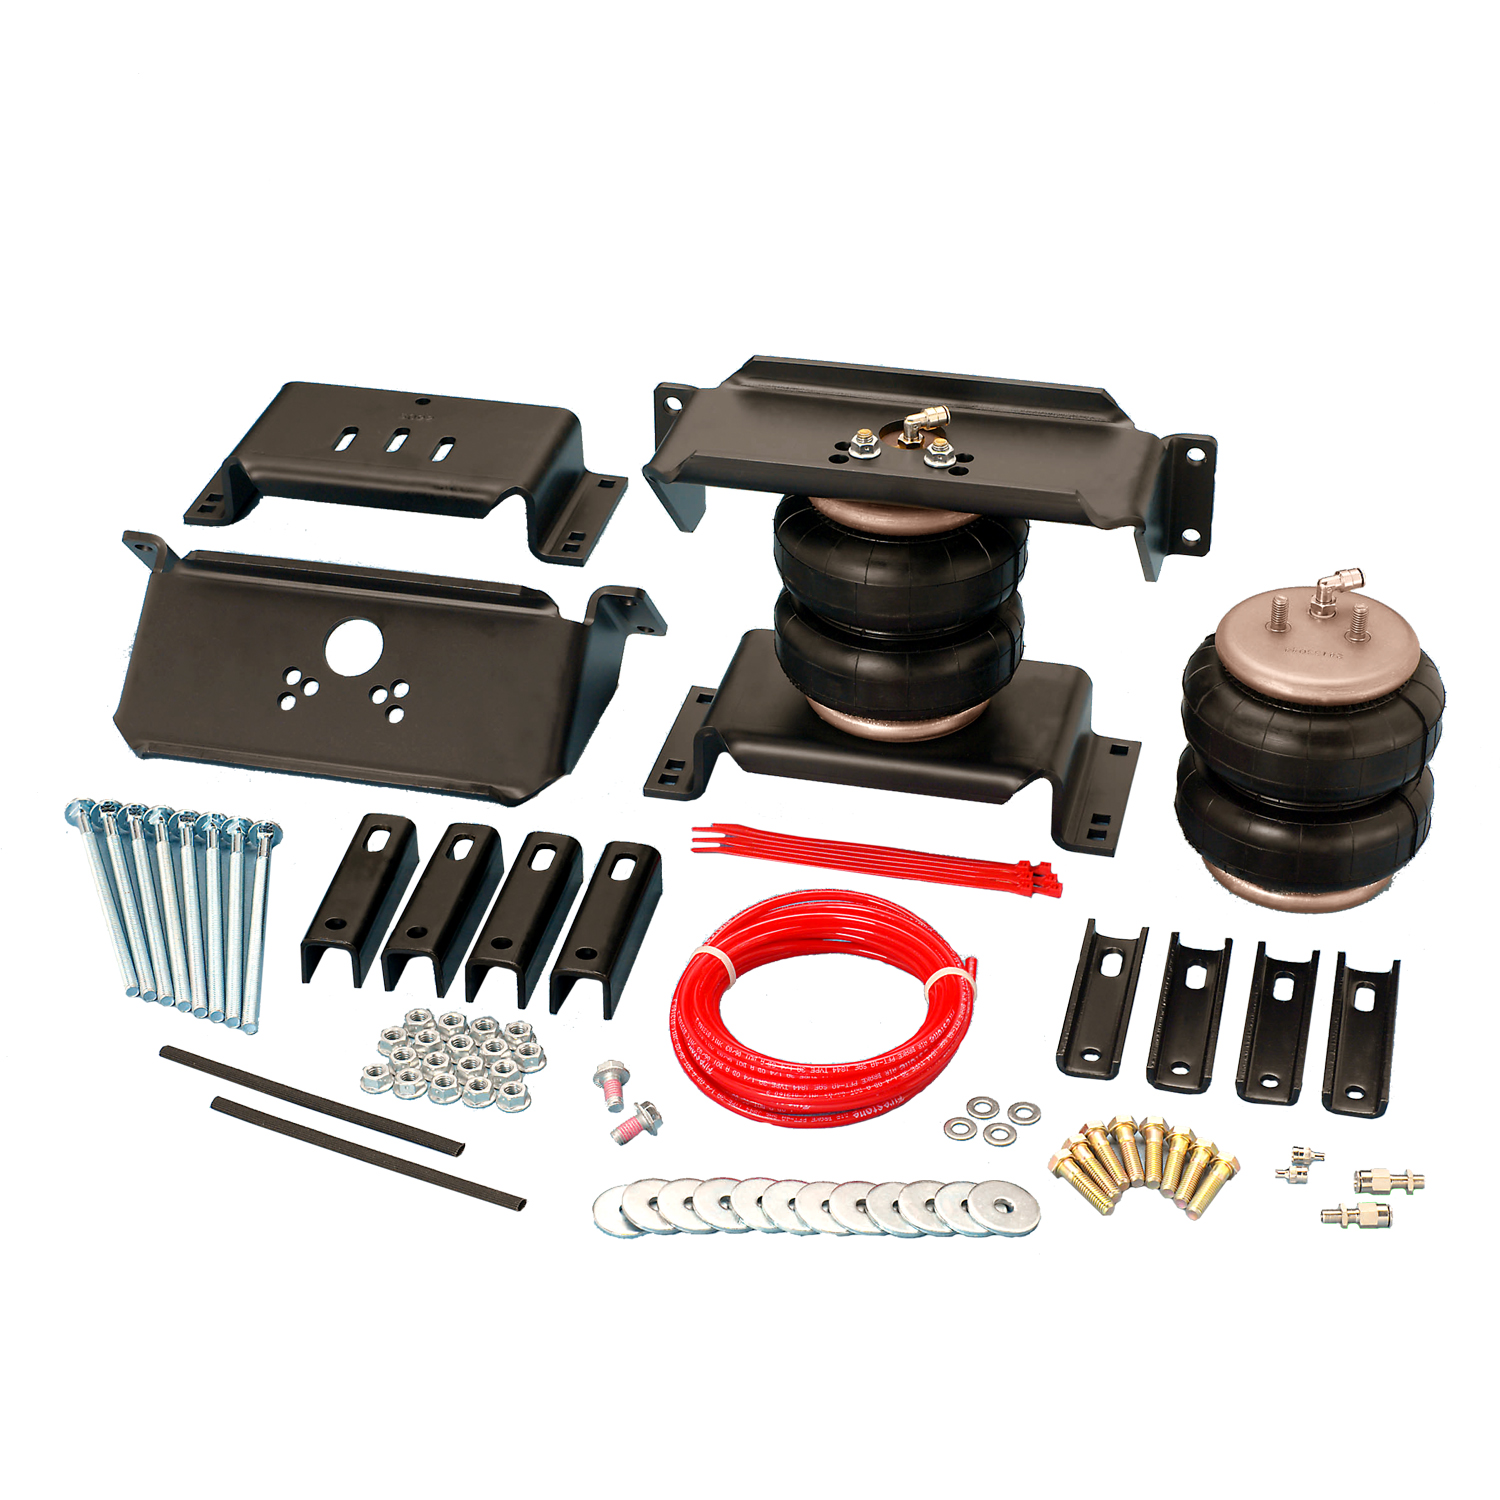 Ride-Riter Air Helper Spring Kit, Rear, Incl. Brackets, Air Helper Springs, Hardware, Air Line, And Inflation Valves, Drilling Required